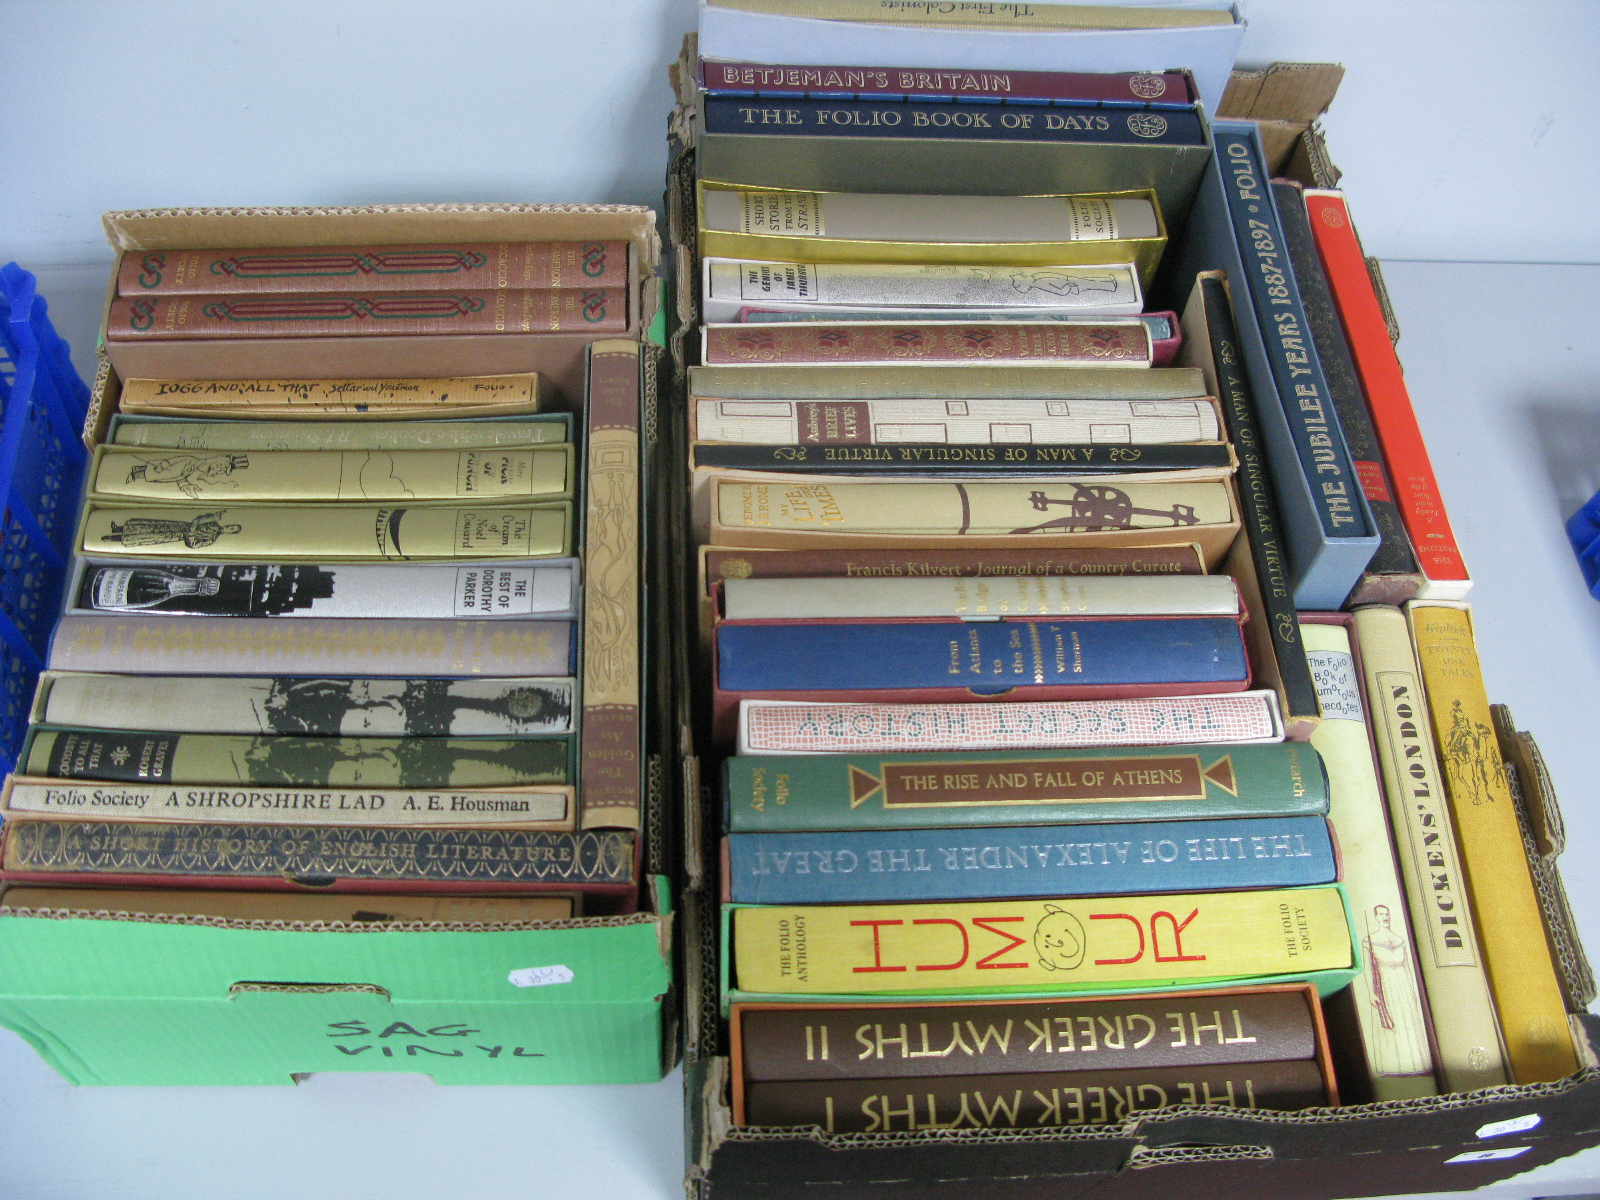 The Folio Society - Over forty books, historical reference, humour and general interest, almost